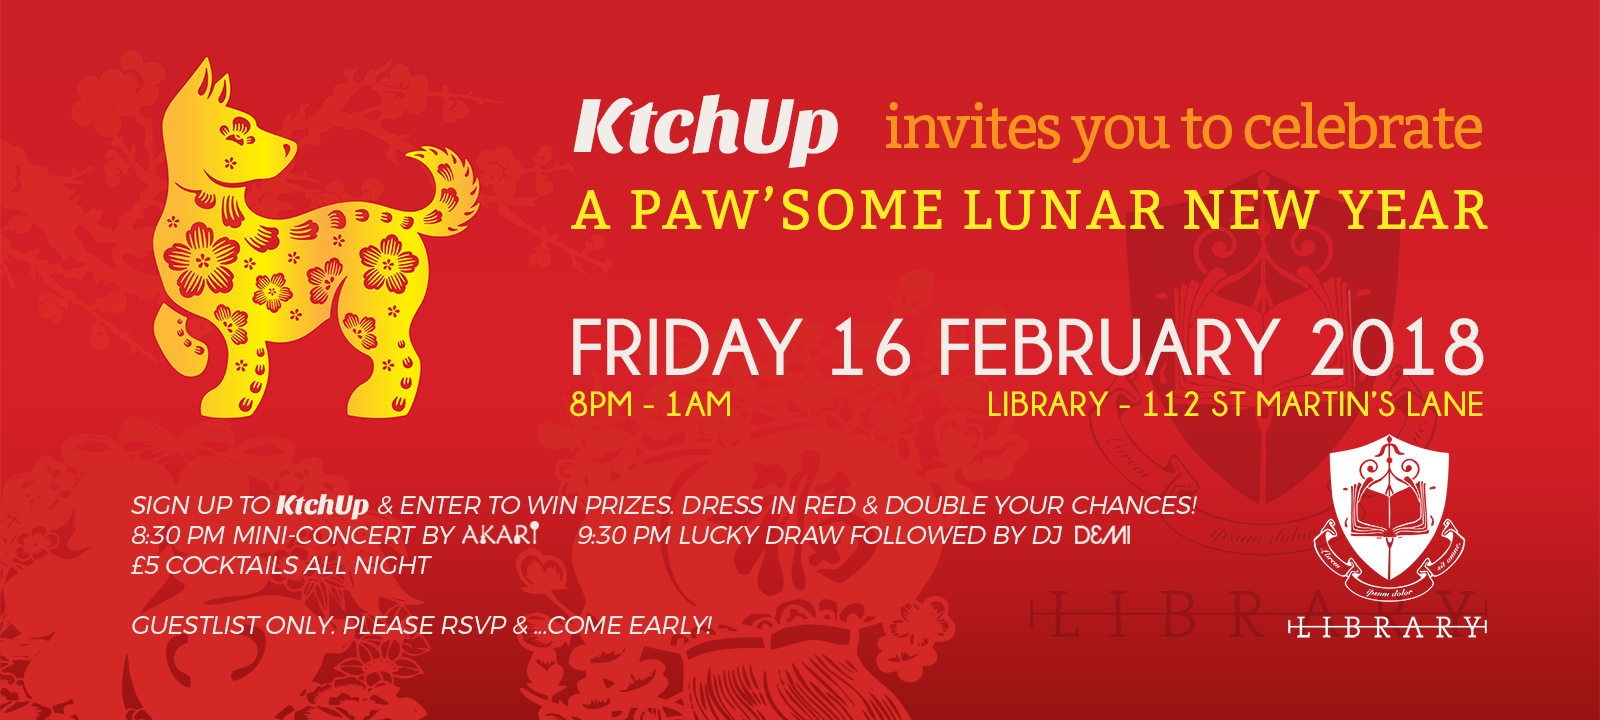 Paw'some Lunar New Year Party - Friday 16th February 2018